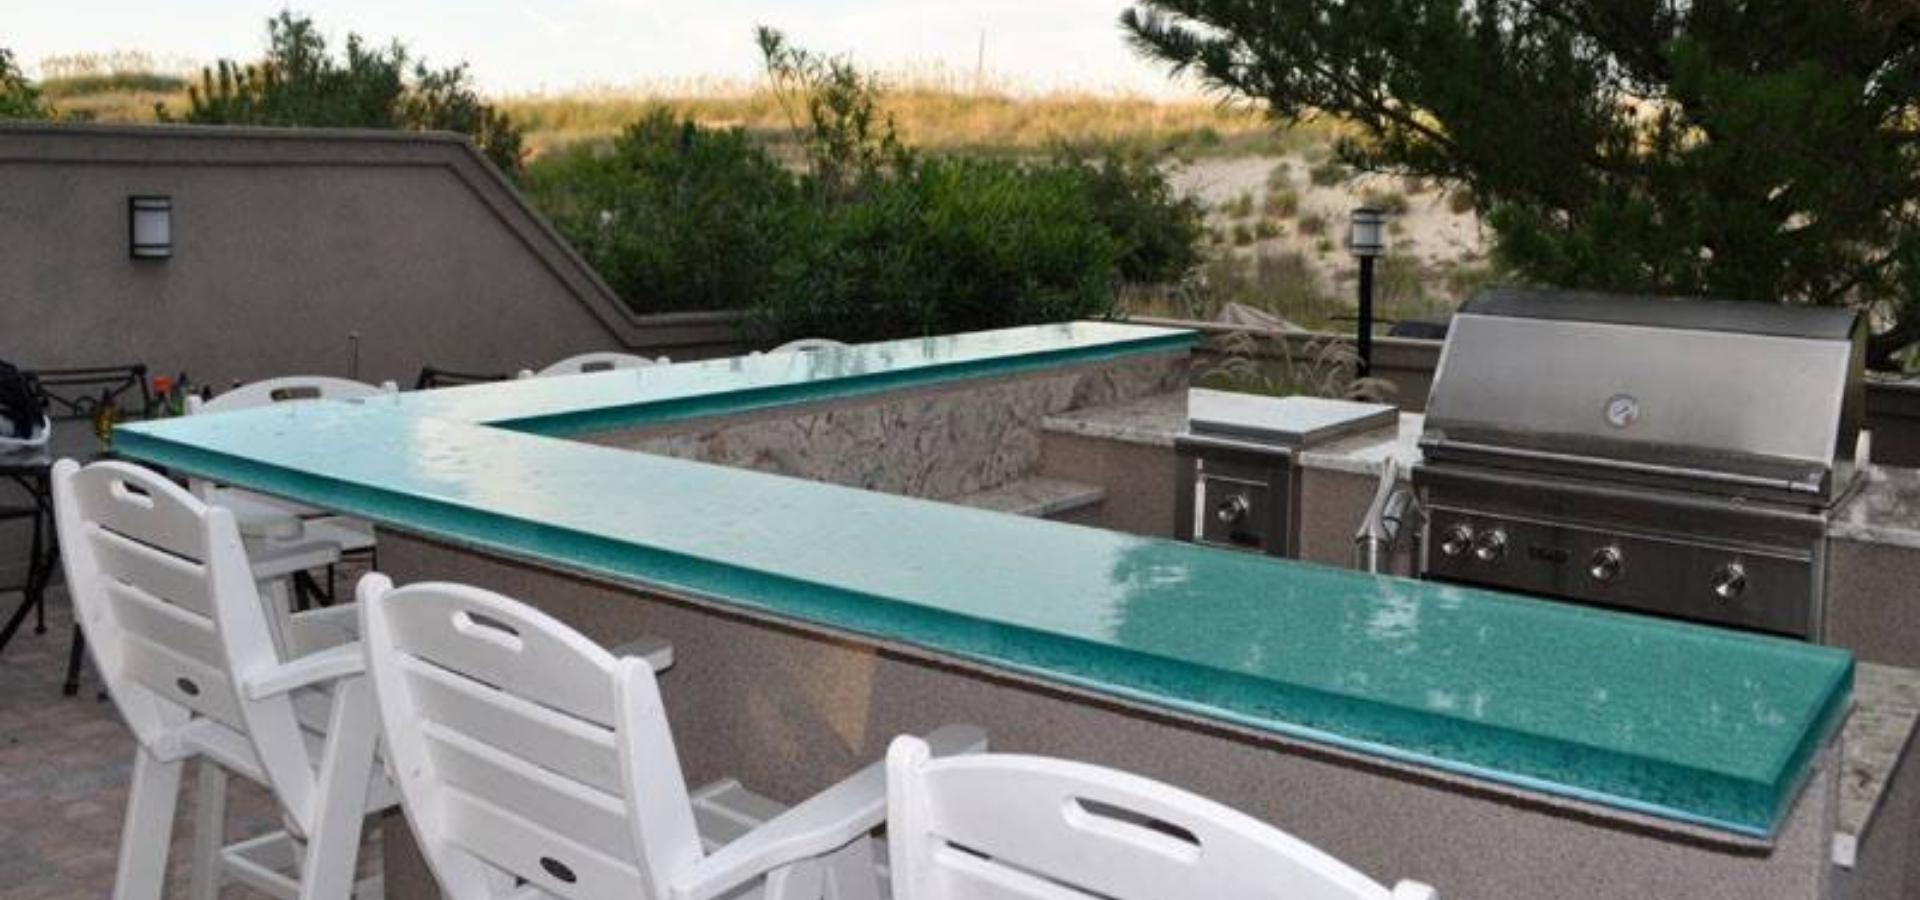 Outdoor overlength thick glass countertops